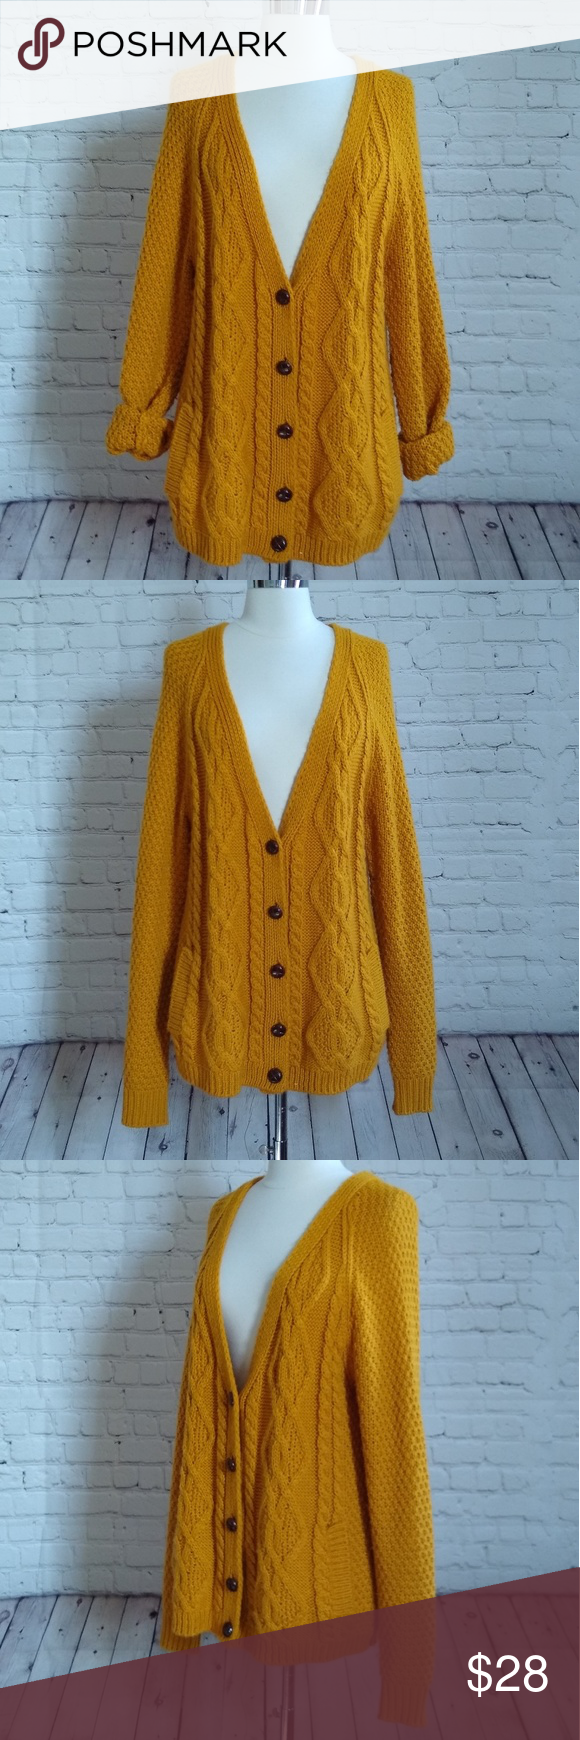 e94374f6e5 UO BDG mustard yellow boyfriend cardigan M Adorable boyfriend cardigan by  BDG from urban outfitters has a loose oversized fit with faux wooden  buttons.